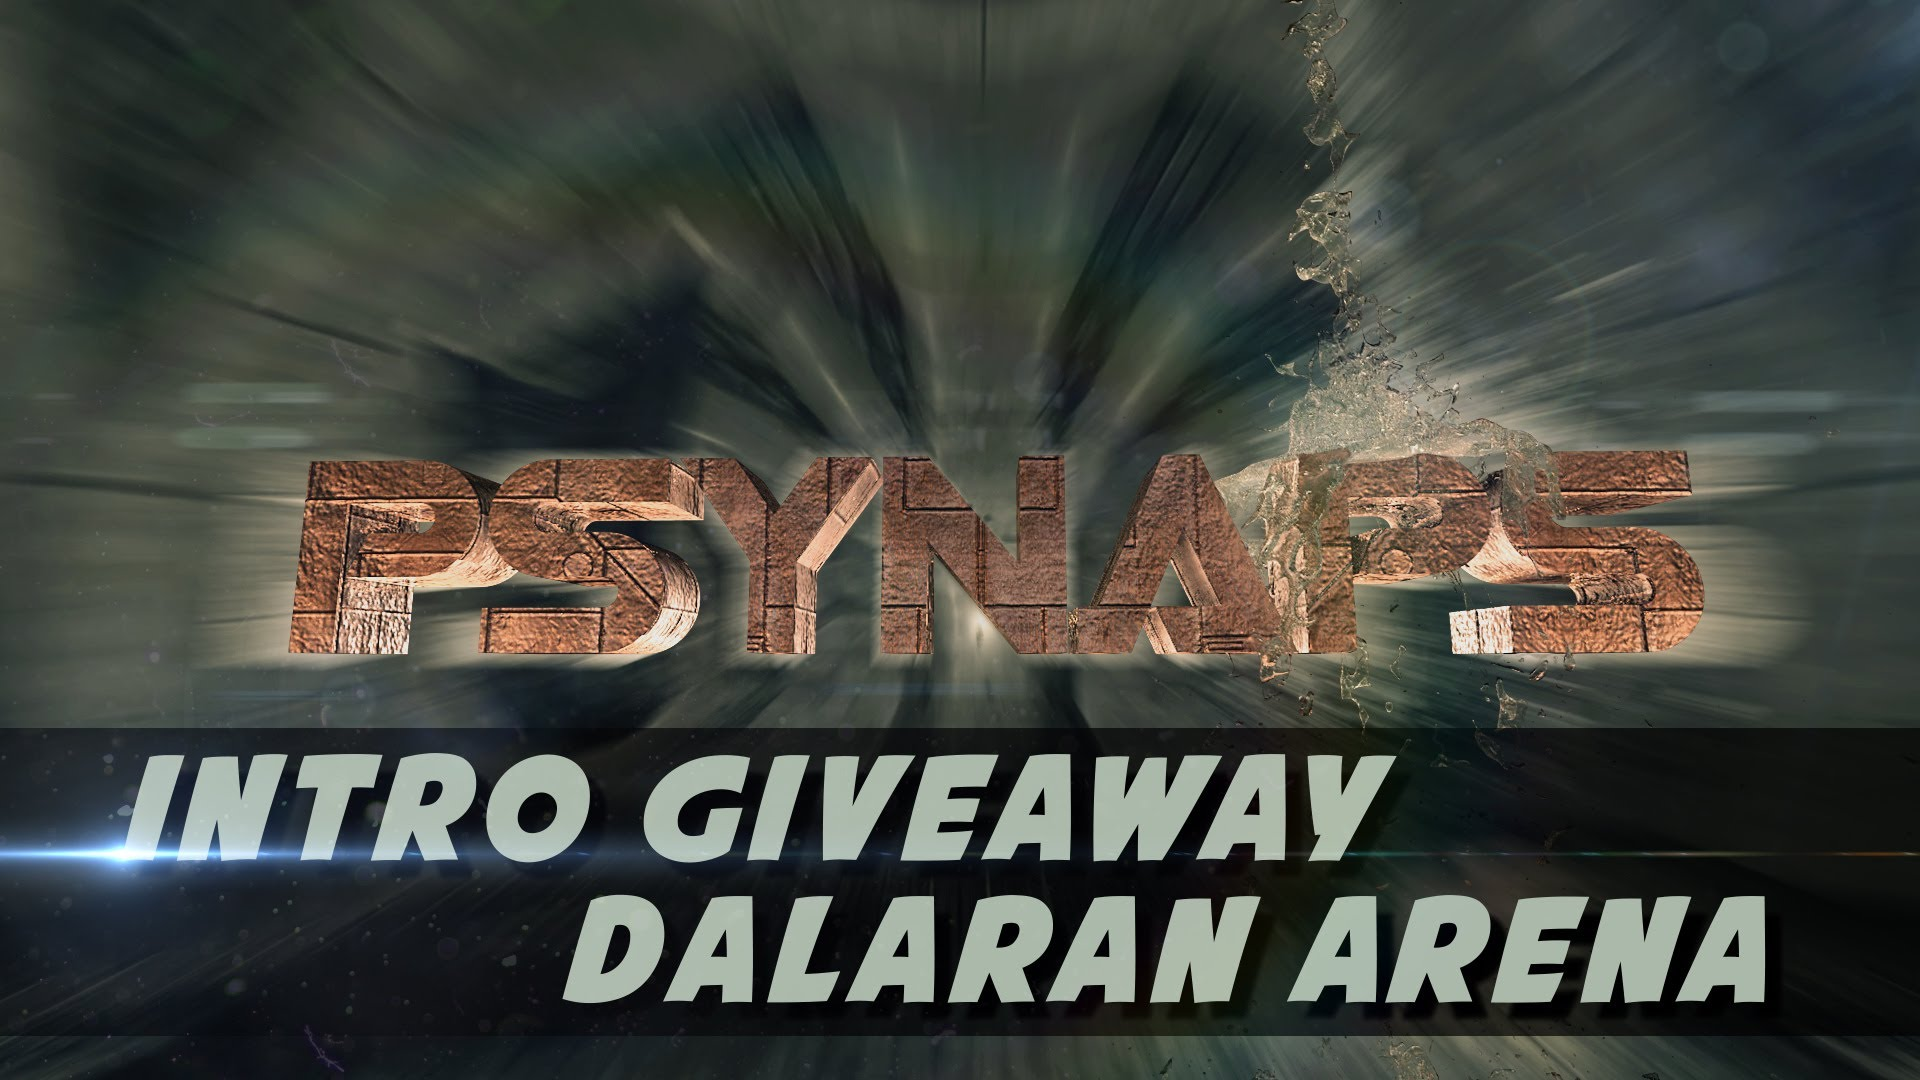 Dalaran Arena 3D – Intro Giveaway Series by Psynaps